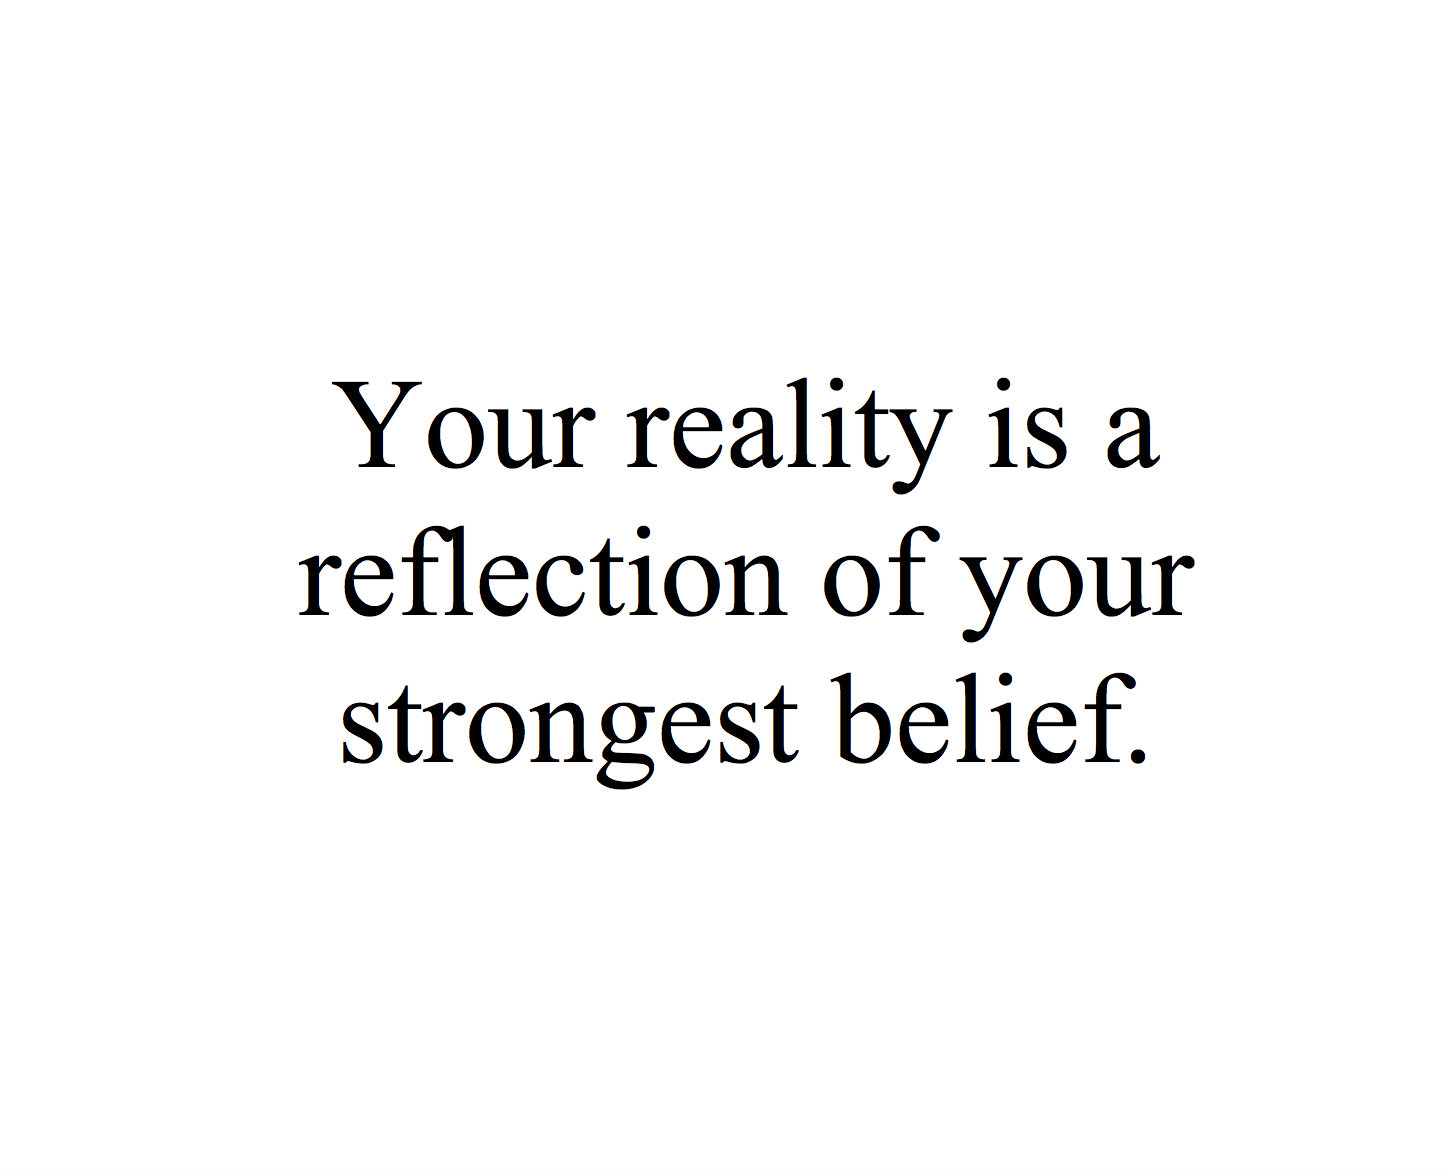 Belief Quotes Your reality is a reflection of your strongest belief. #quote  Belief Quotes